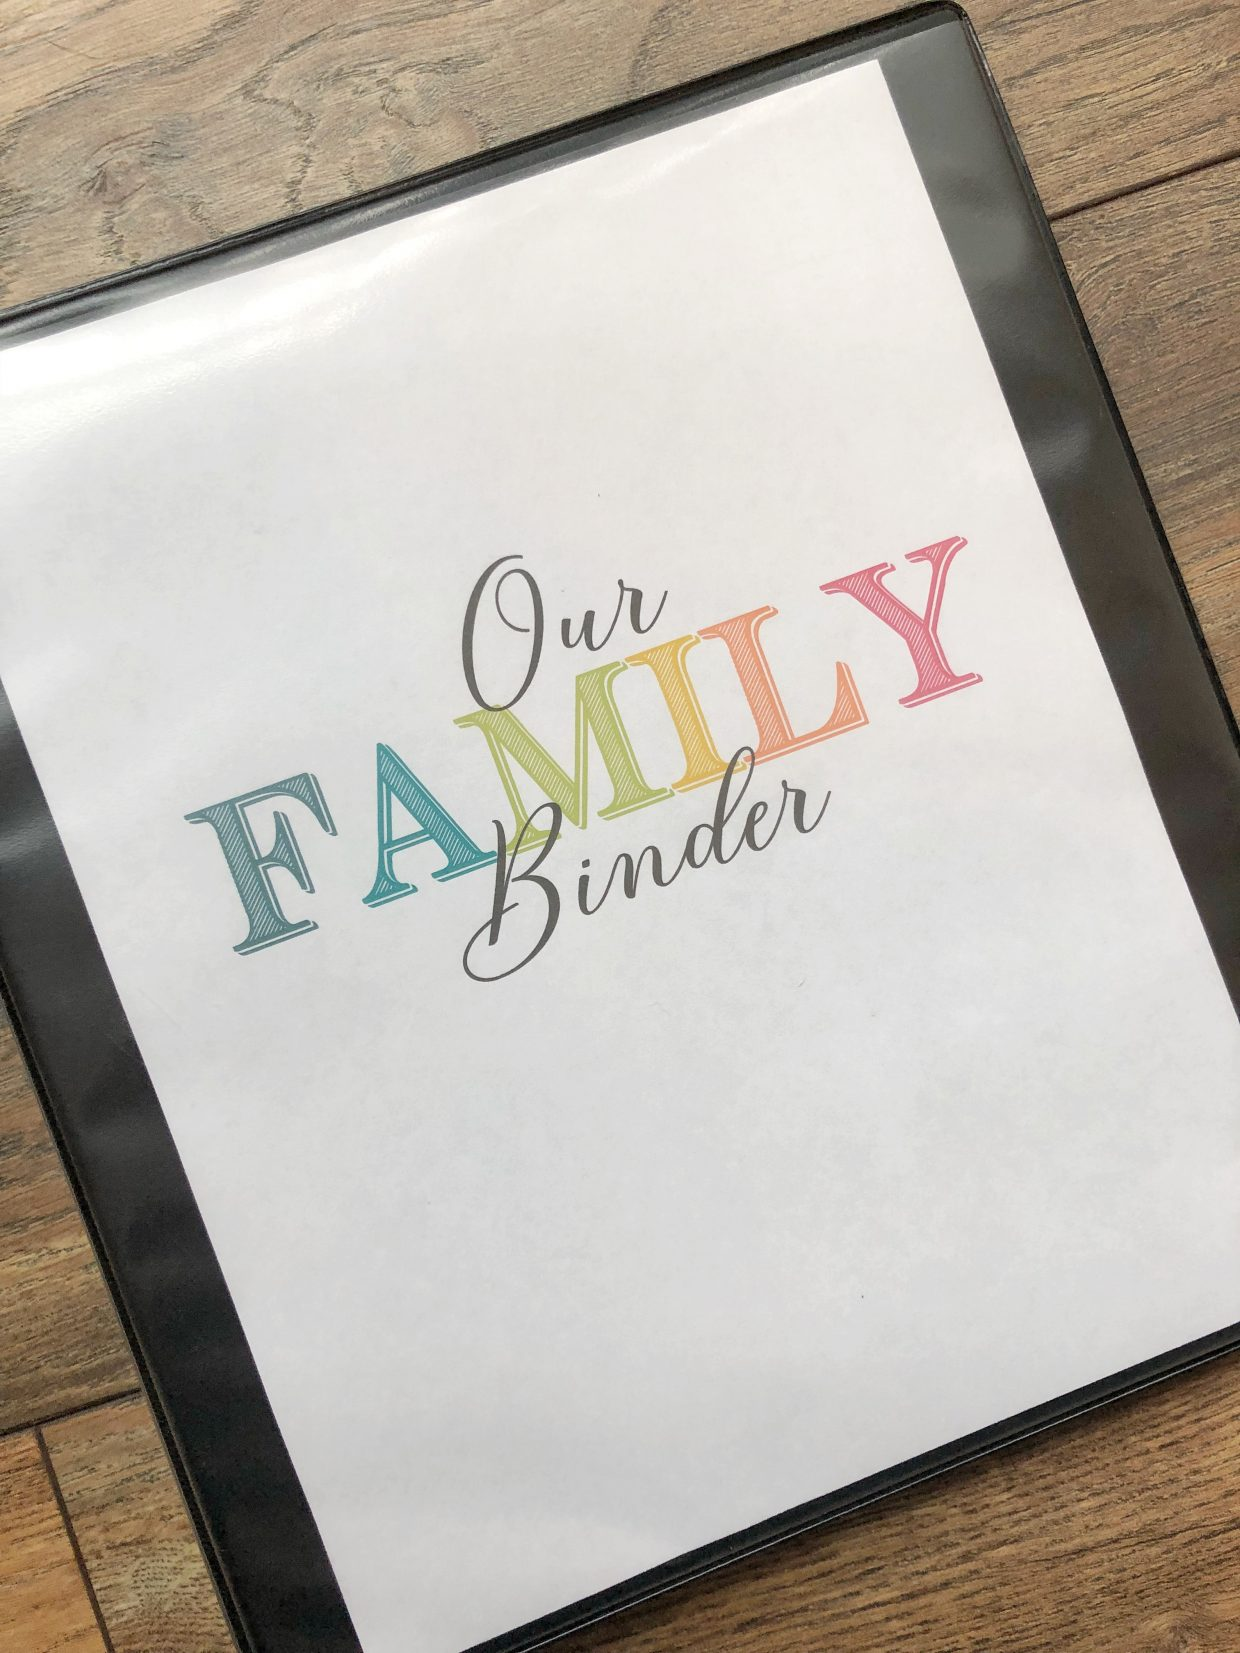 Family Emergency Binder - Free Printables to Create Your Own | Rock It Mama | Learn how to create your own emergency family binder for grab-and-go